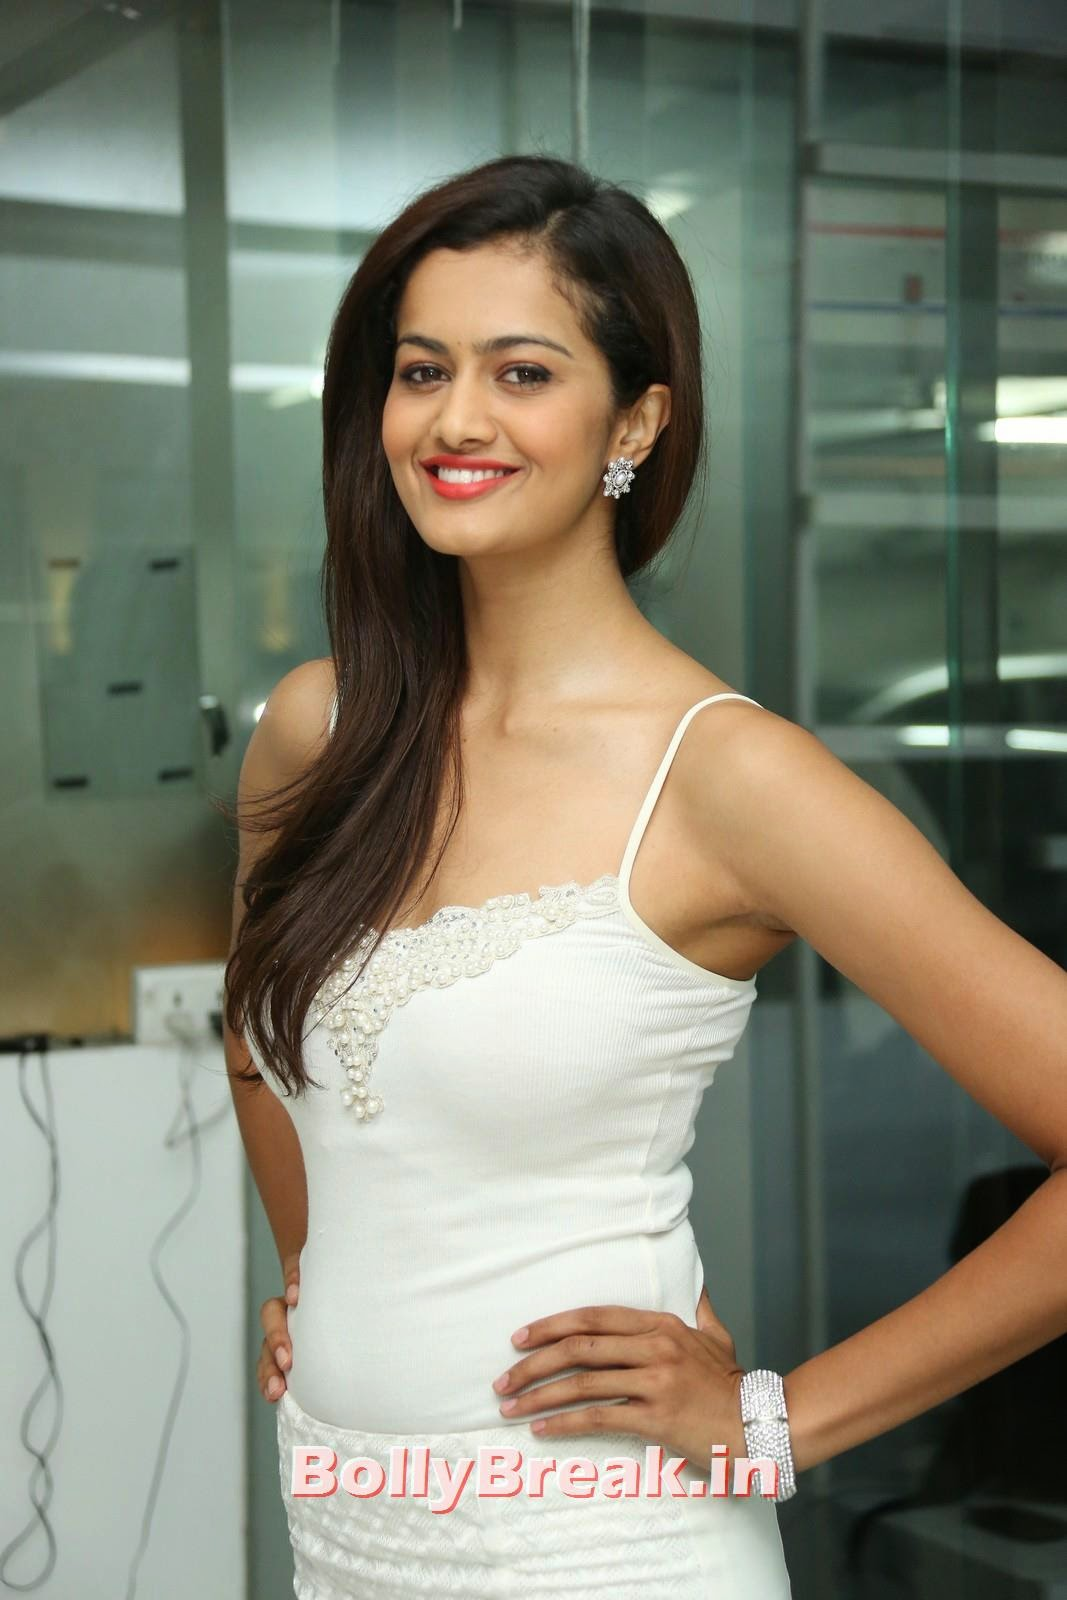 , Shubra Aiyappa Hot Photo Gallery 2014 - Dress Without Sleeves